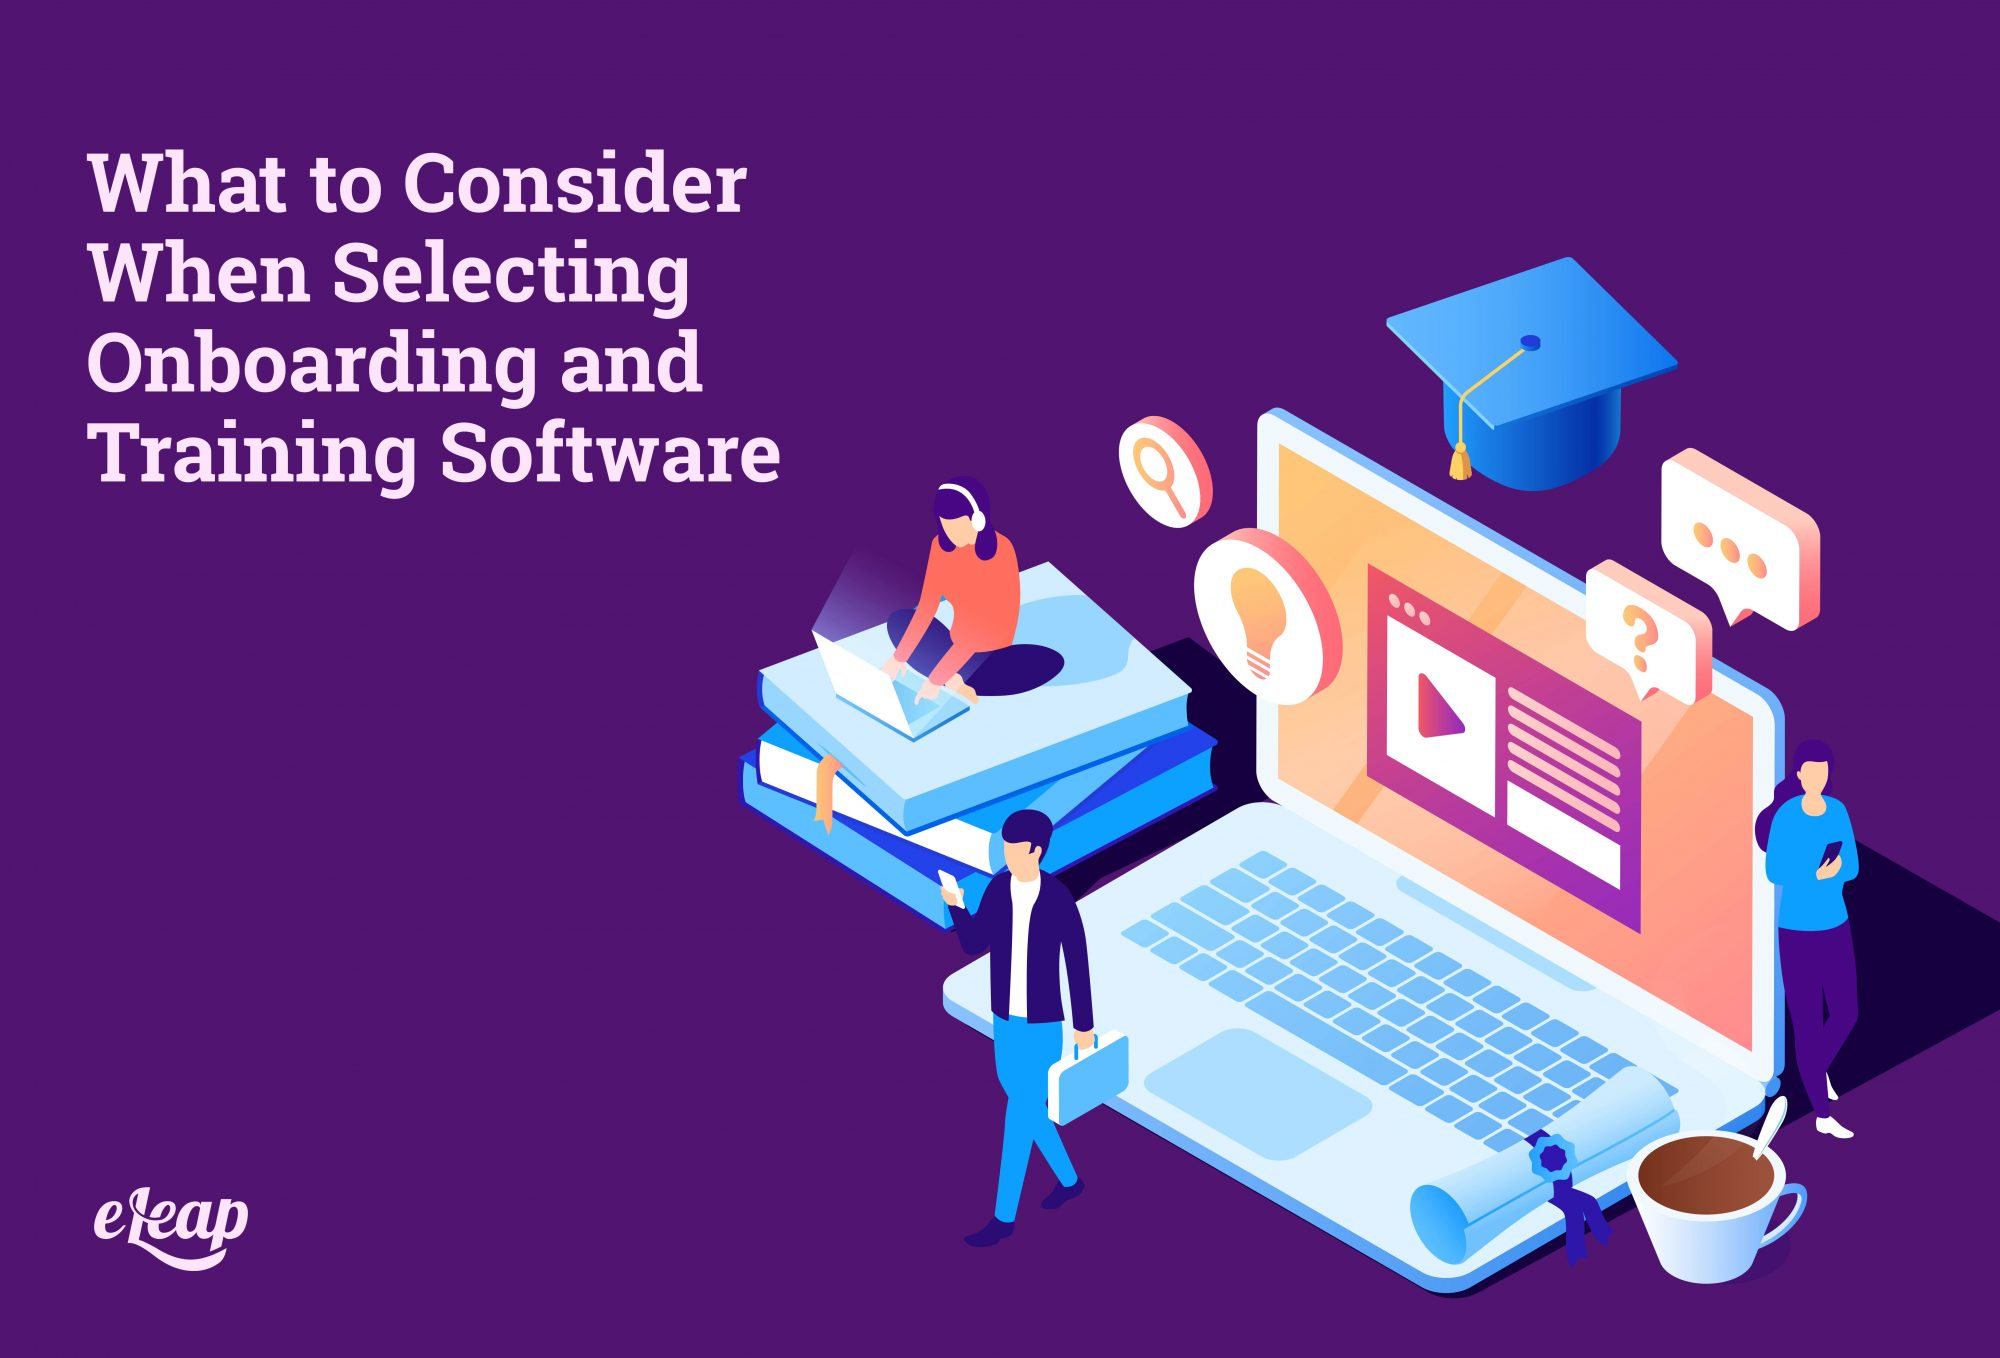 What to Consider When Selecting Onboarding and Training Software